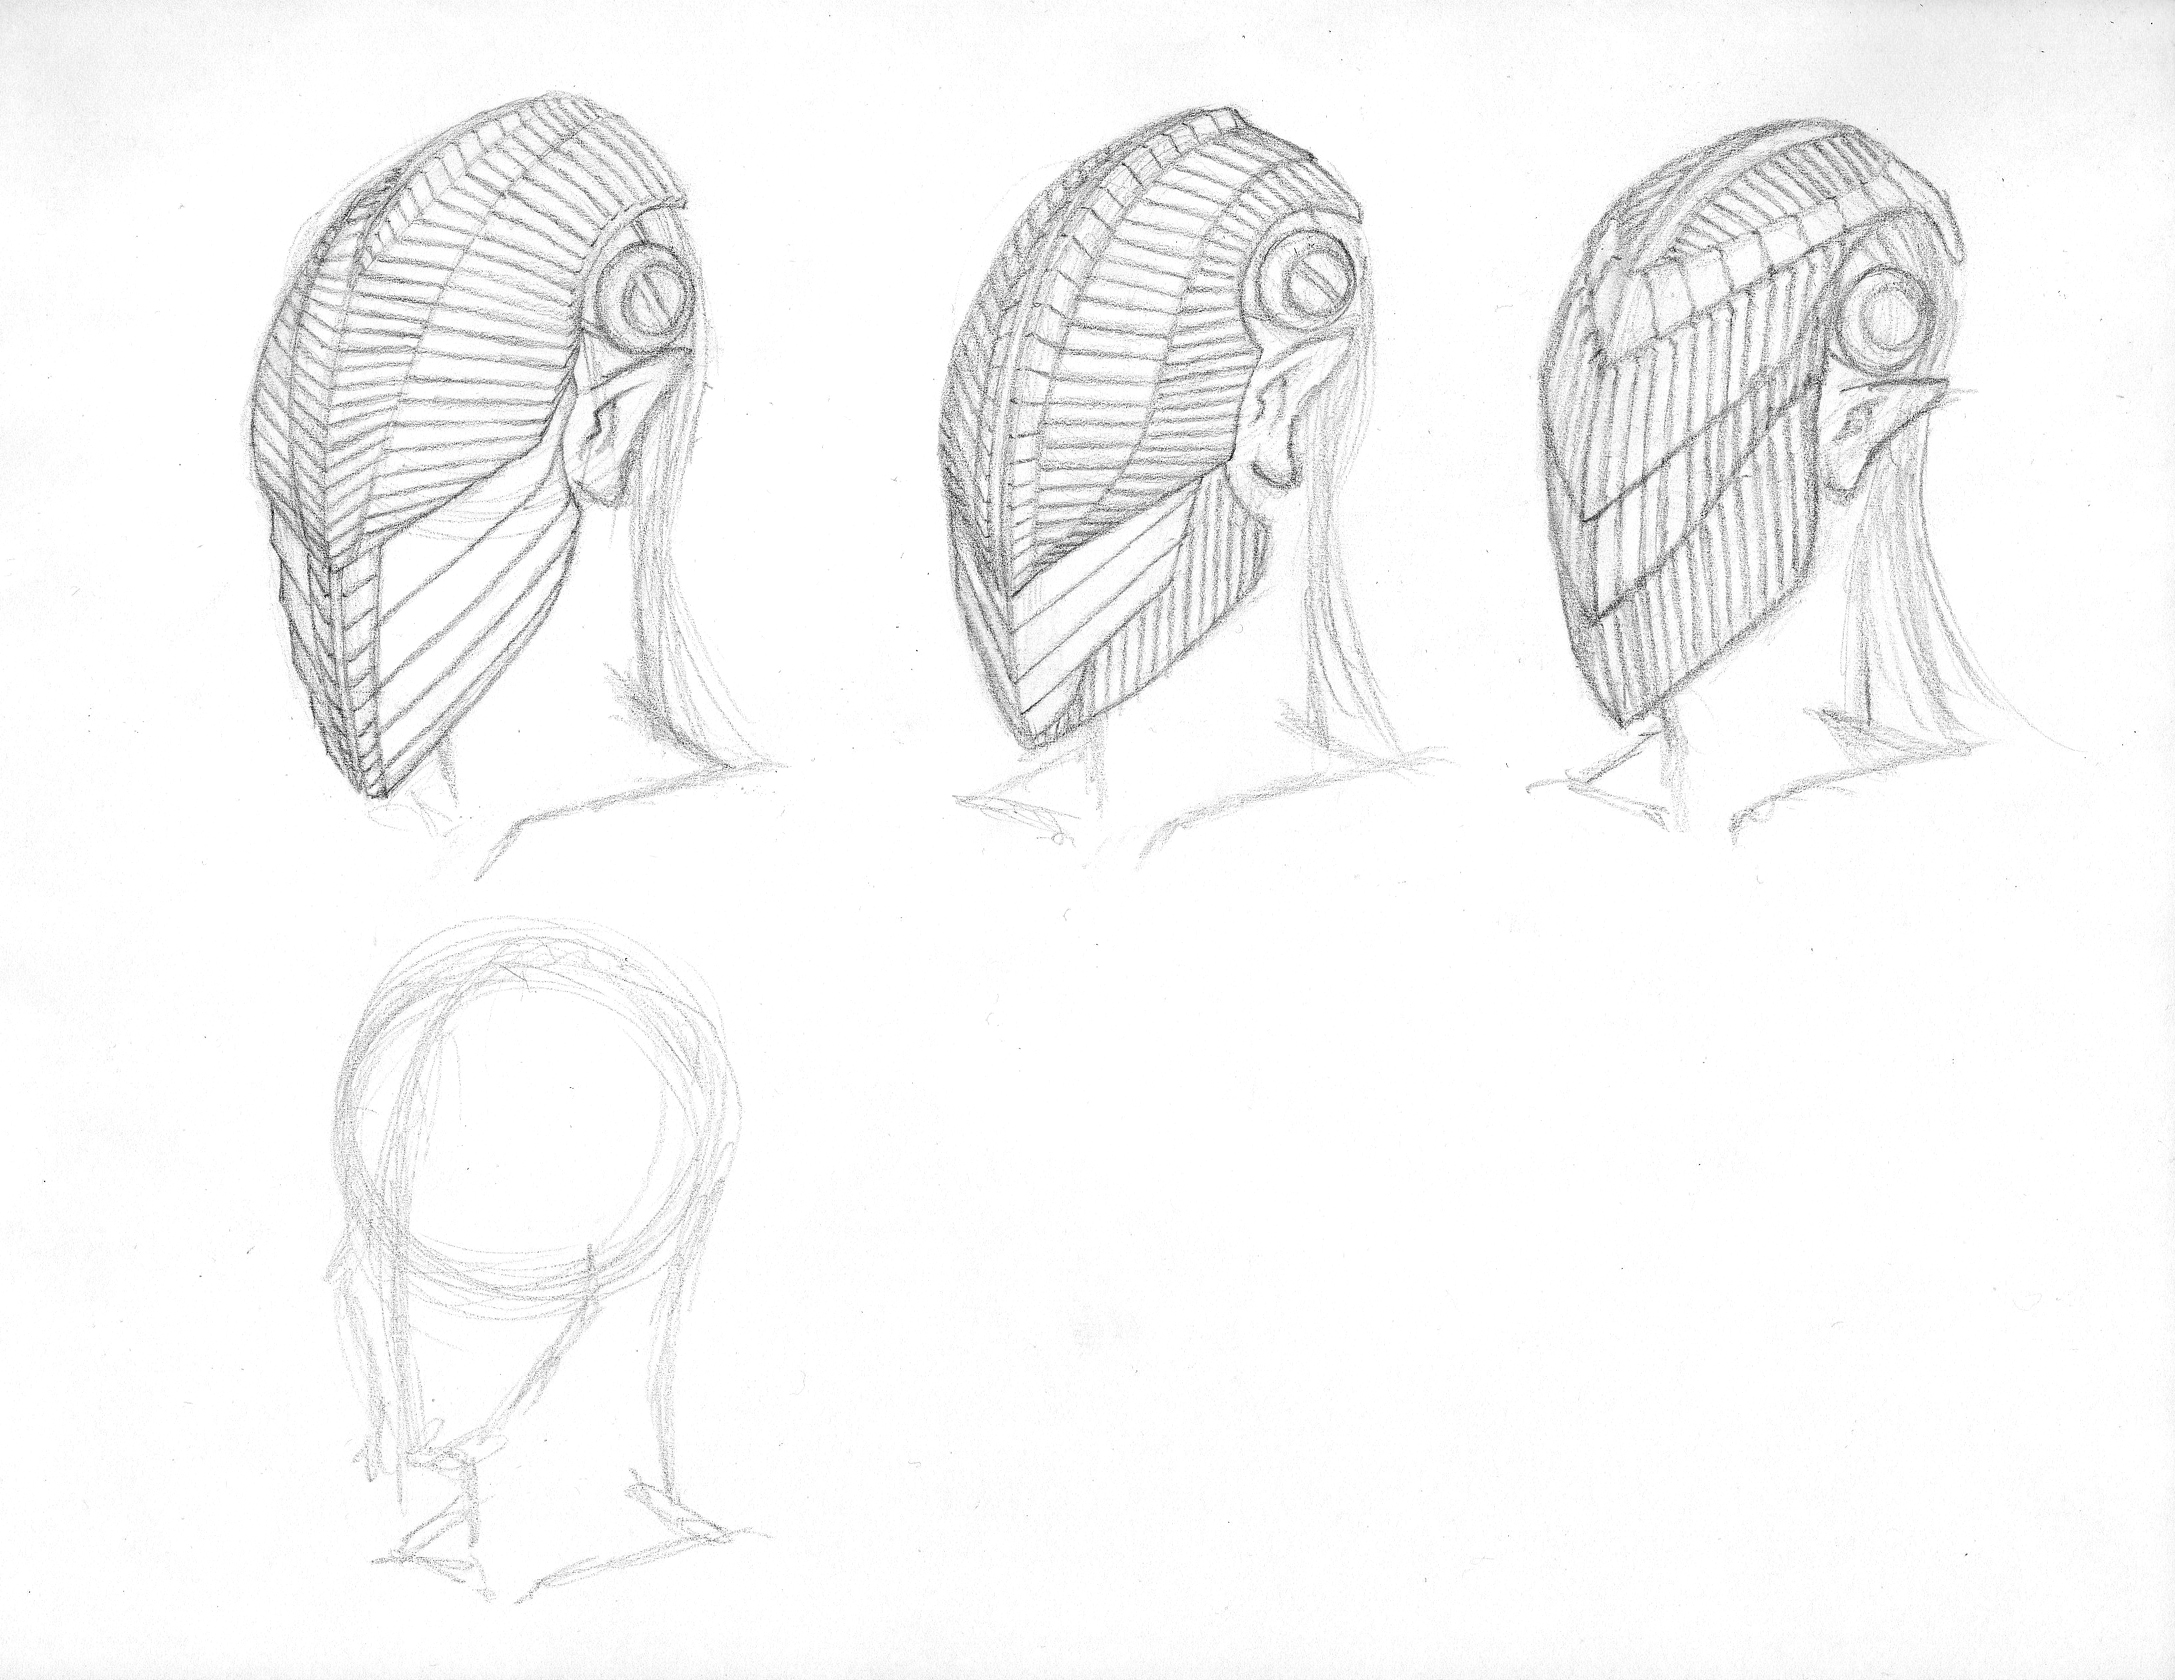 3 Sith Lord Sketches - Phase 2 Mask VI  032